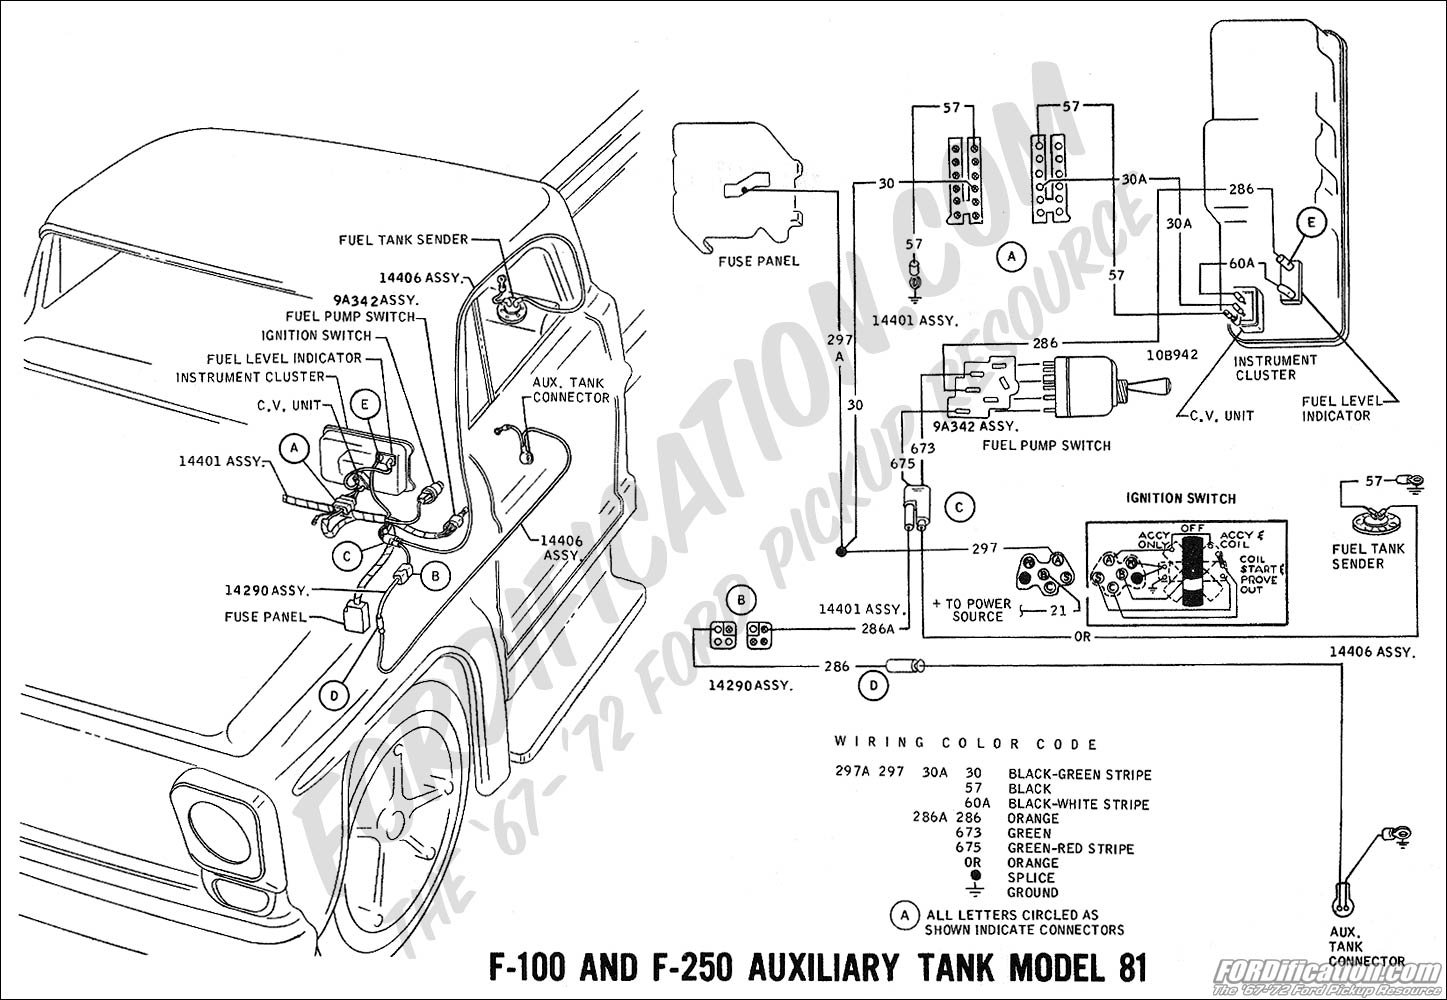 hight resolution of 1969 f 100 f 250 auxiliary fuel tank model 81